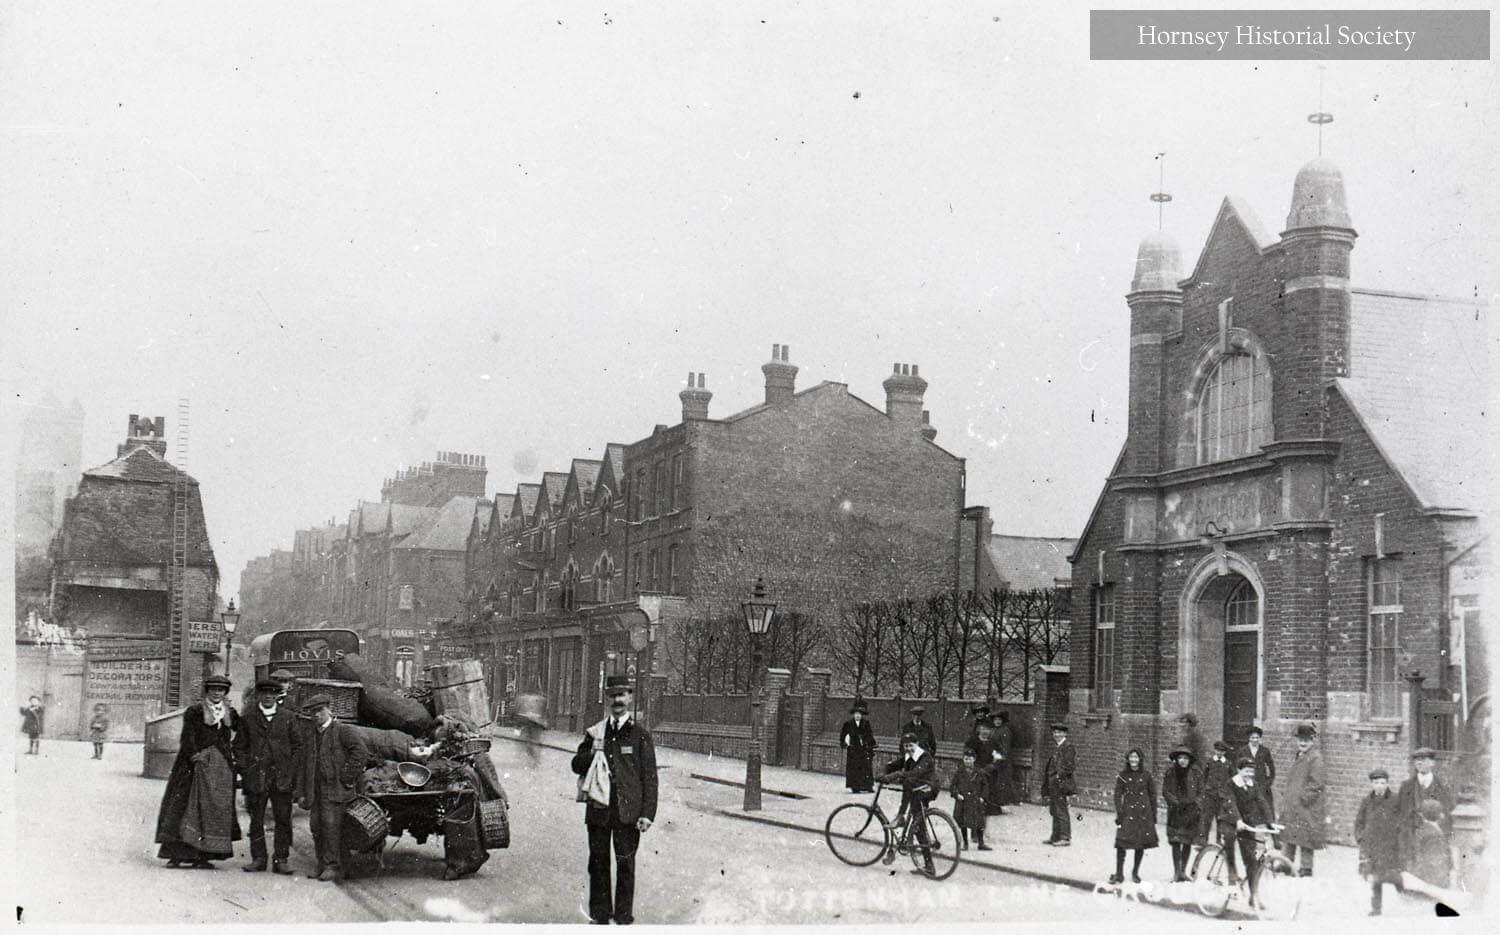 Manor Cottages (left) and Salvation Army Hostel (right) Tottenham Lane, Crouch End